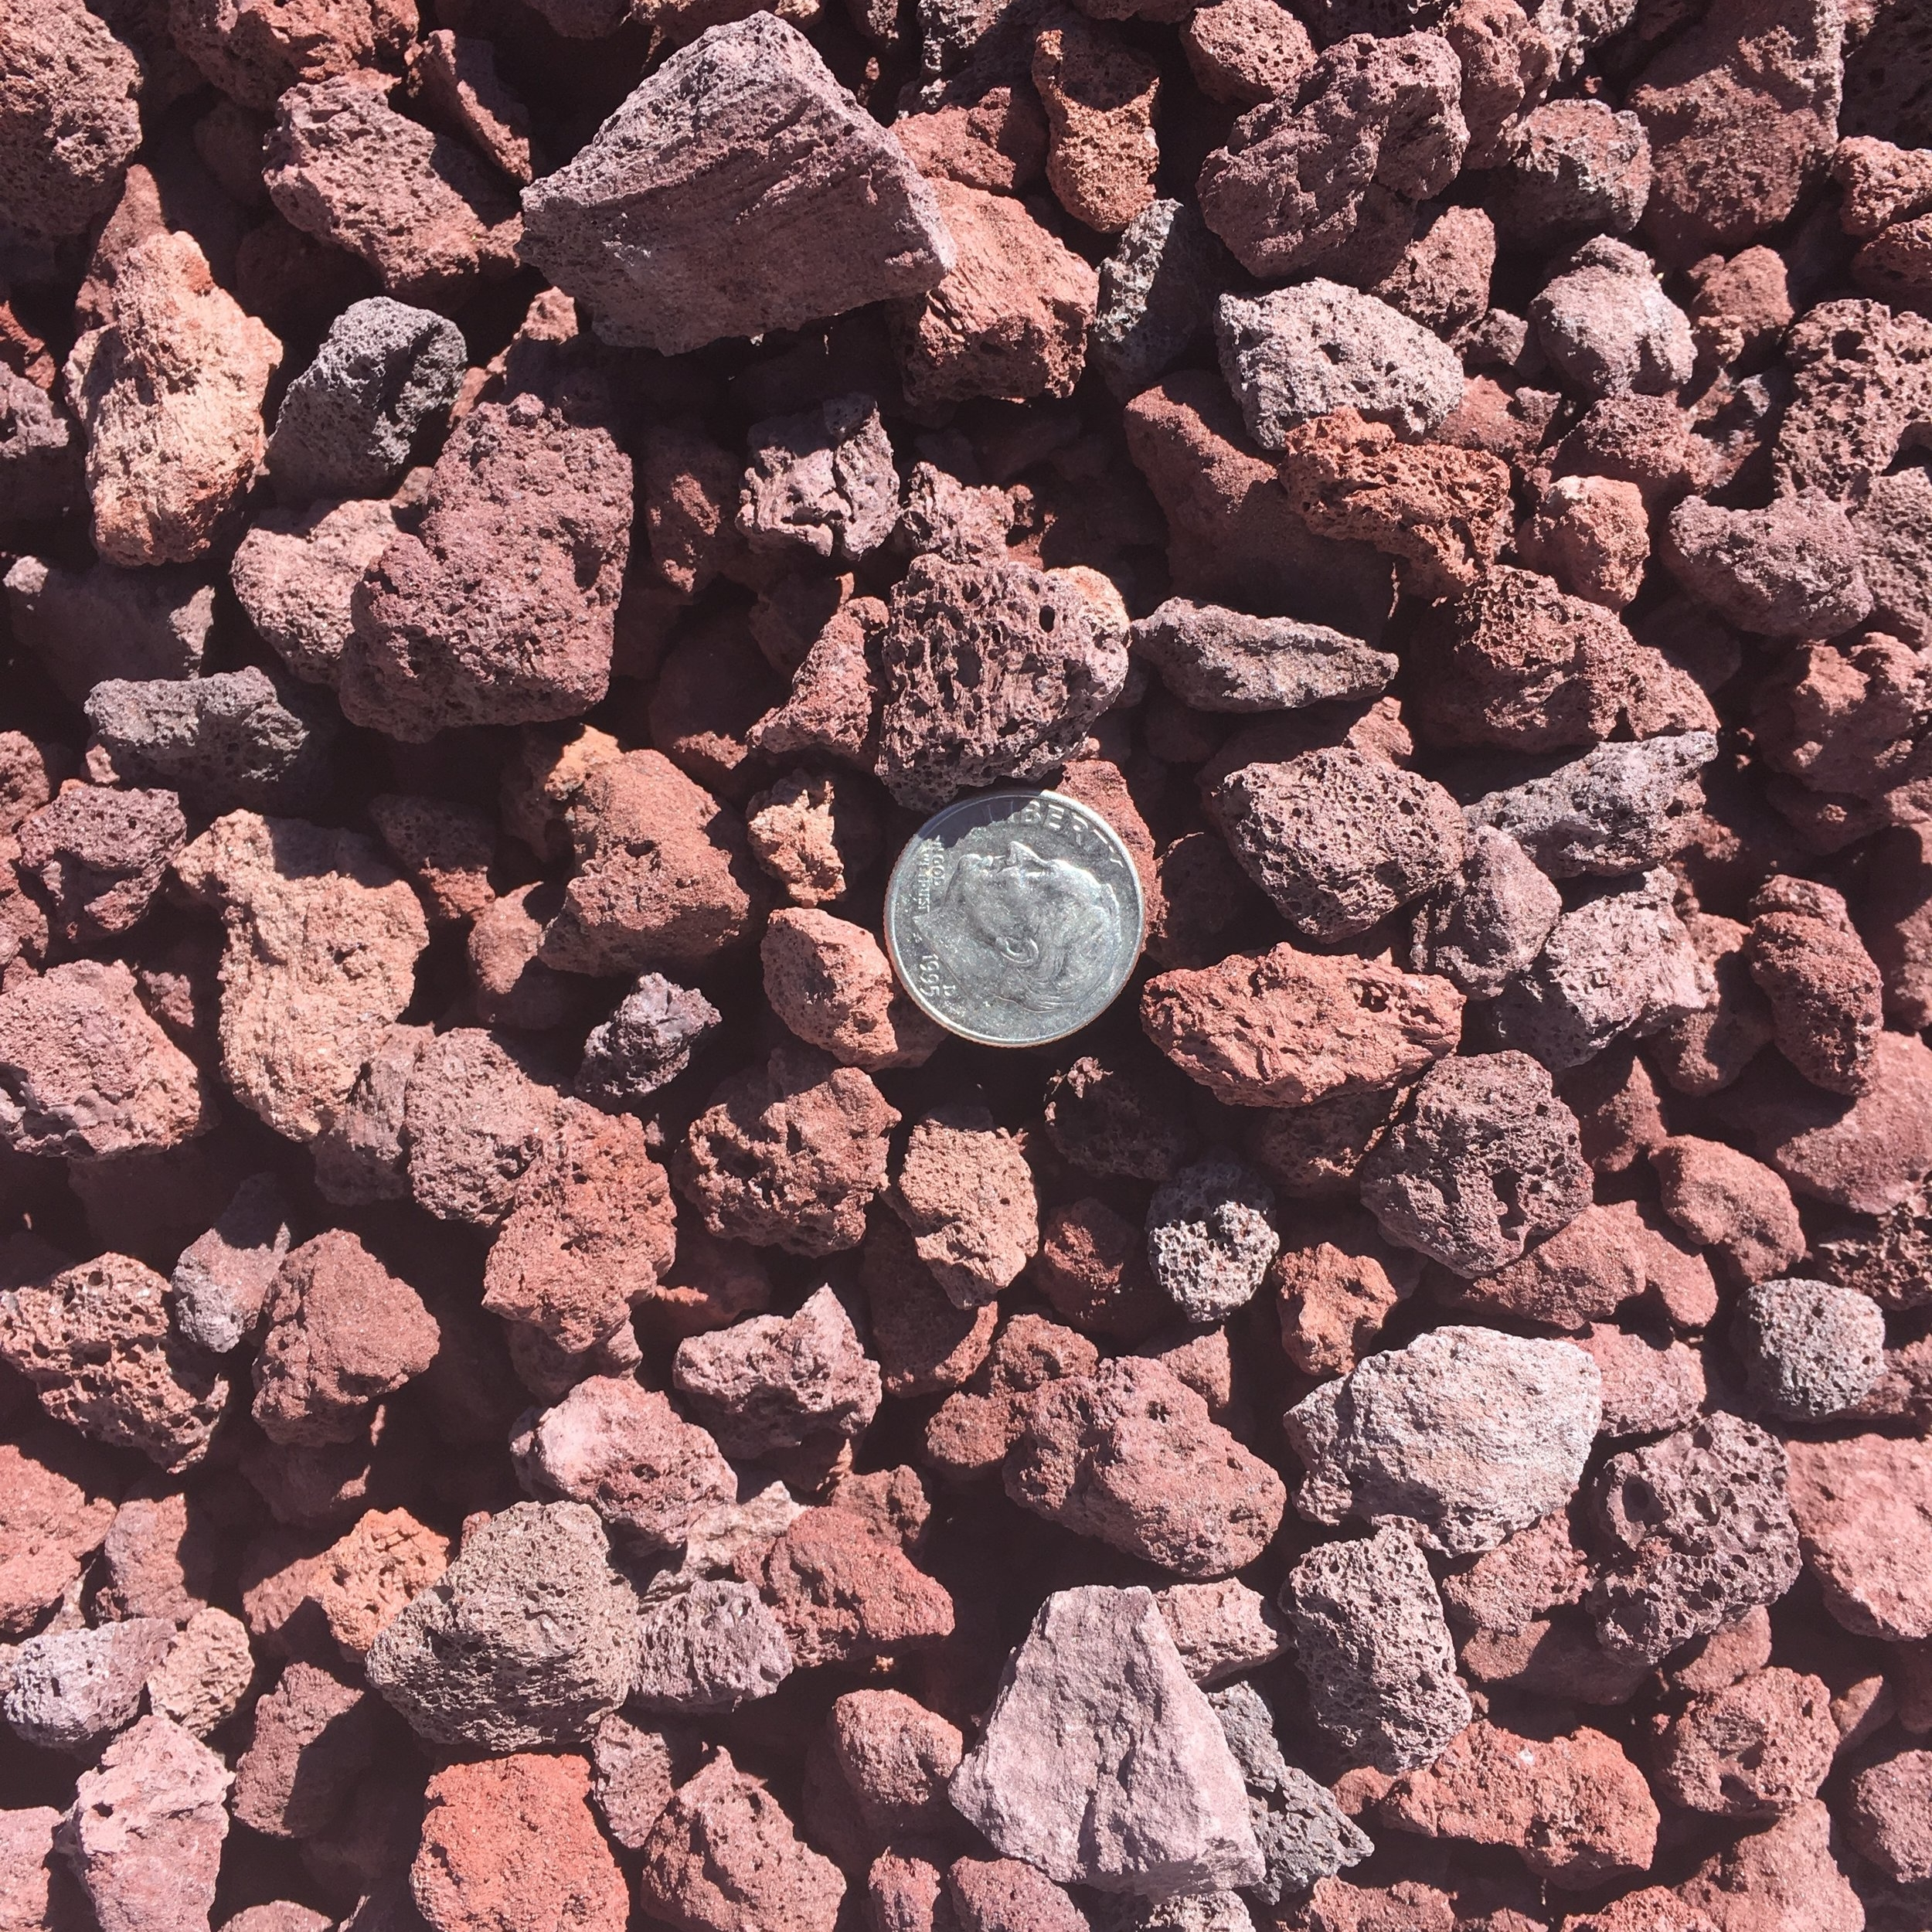 """Scoria 3/4""""  Red pumice rock used for landscaping"""